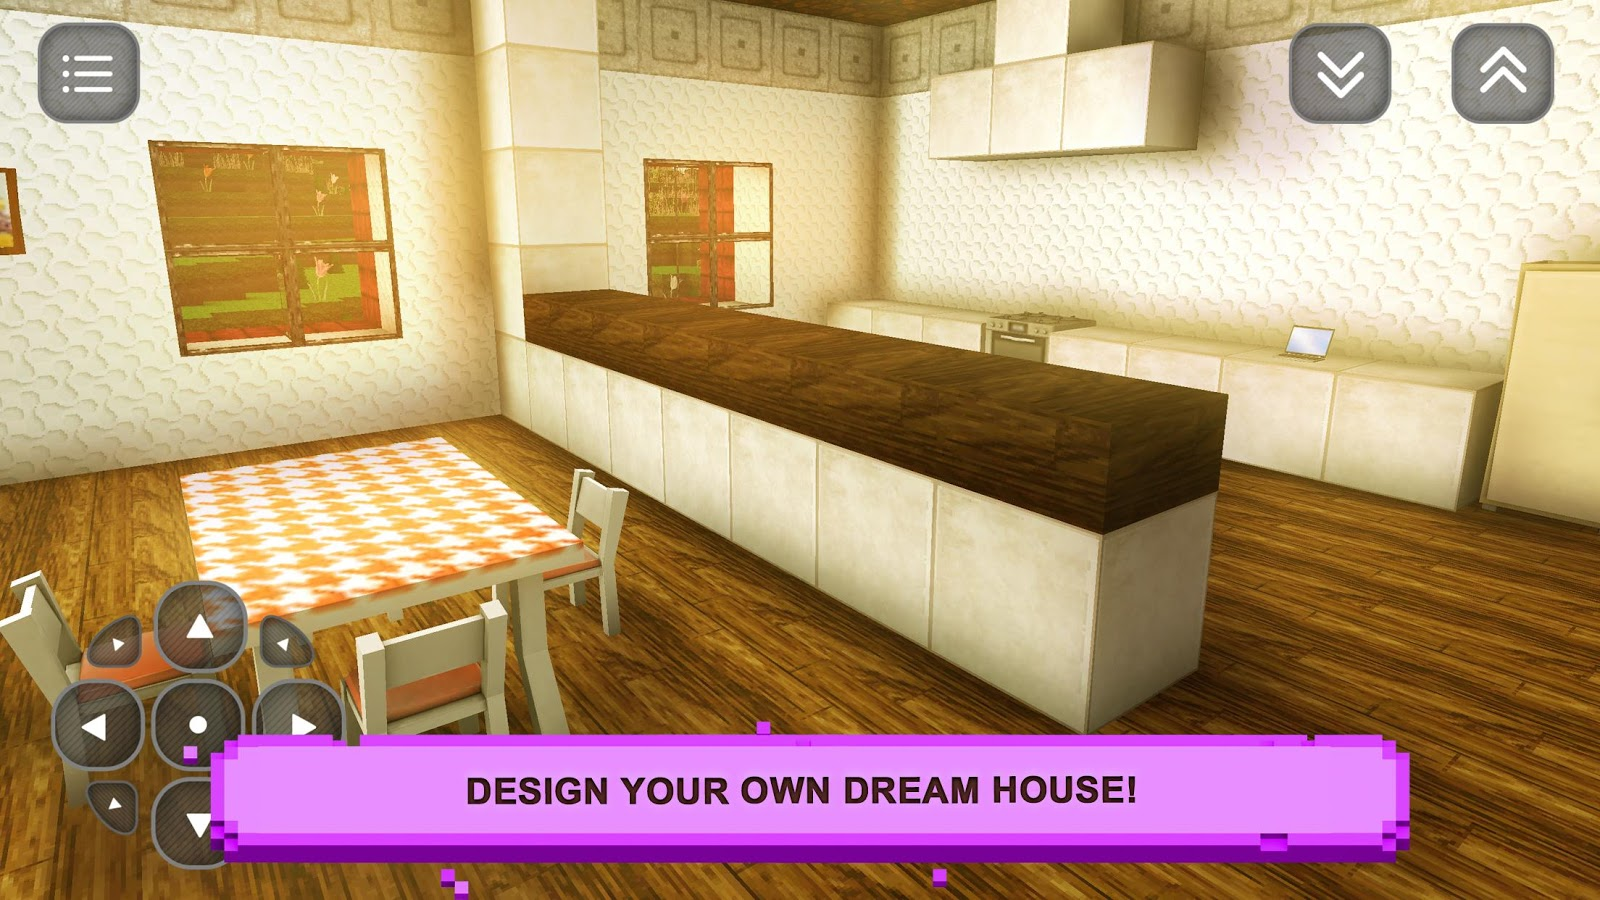 Sim girls craft home design android apps on google play for Design dream home online